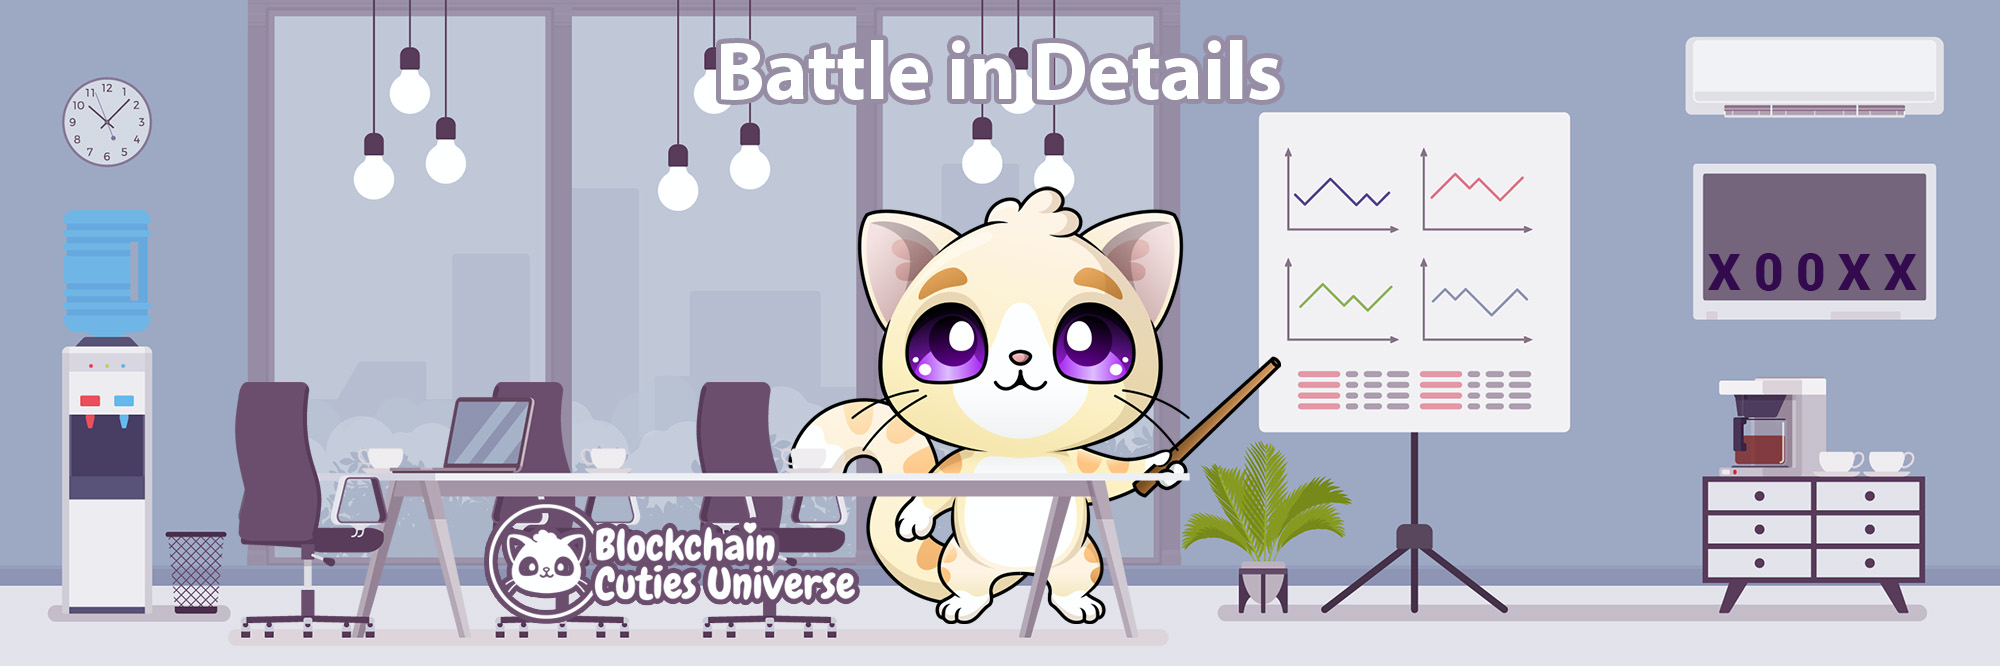 [Blockchain Cuties Universe] The Secrets of Cutie Battles